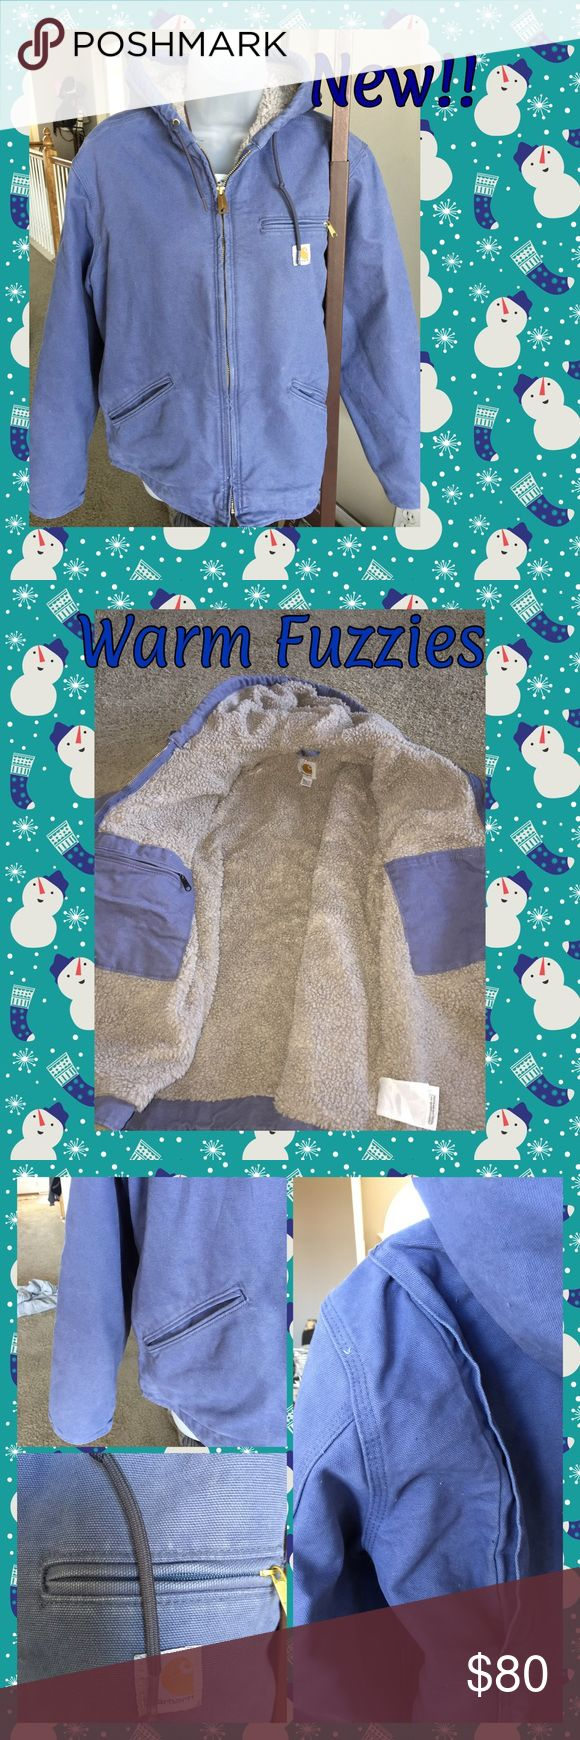 🎉🎊12/17 HP🎊🎉Periwinkle Ladies Carhartt Coat💙 If you're familiar with Carhartt Coats, you know they are the warmest coats in work or casual wear. Heavy cotton outer shell and warm tan sheep skin-like materials inside. Perfect Christmas gift for the gal that loves the outdoors but, likes to still keep it a tad feminine. Large hood with zip up front and pockets inside and out💙More details to come. Trade value $108 Ask any questions before purchasing that you may have Carhartt Jackets…